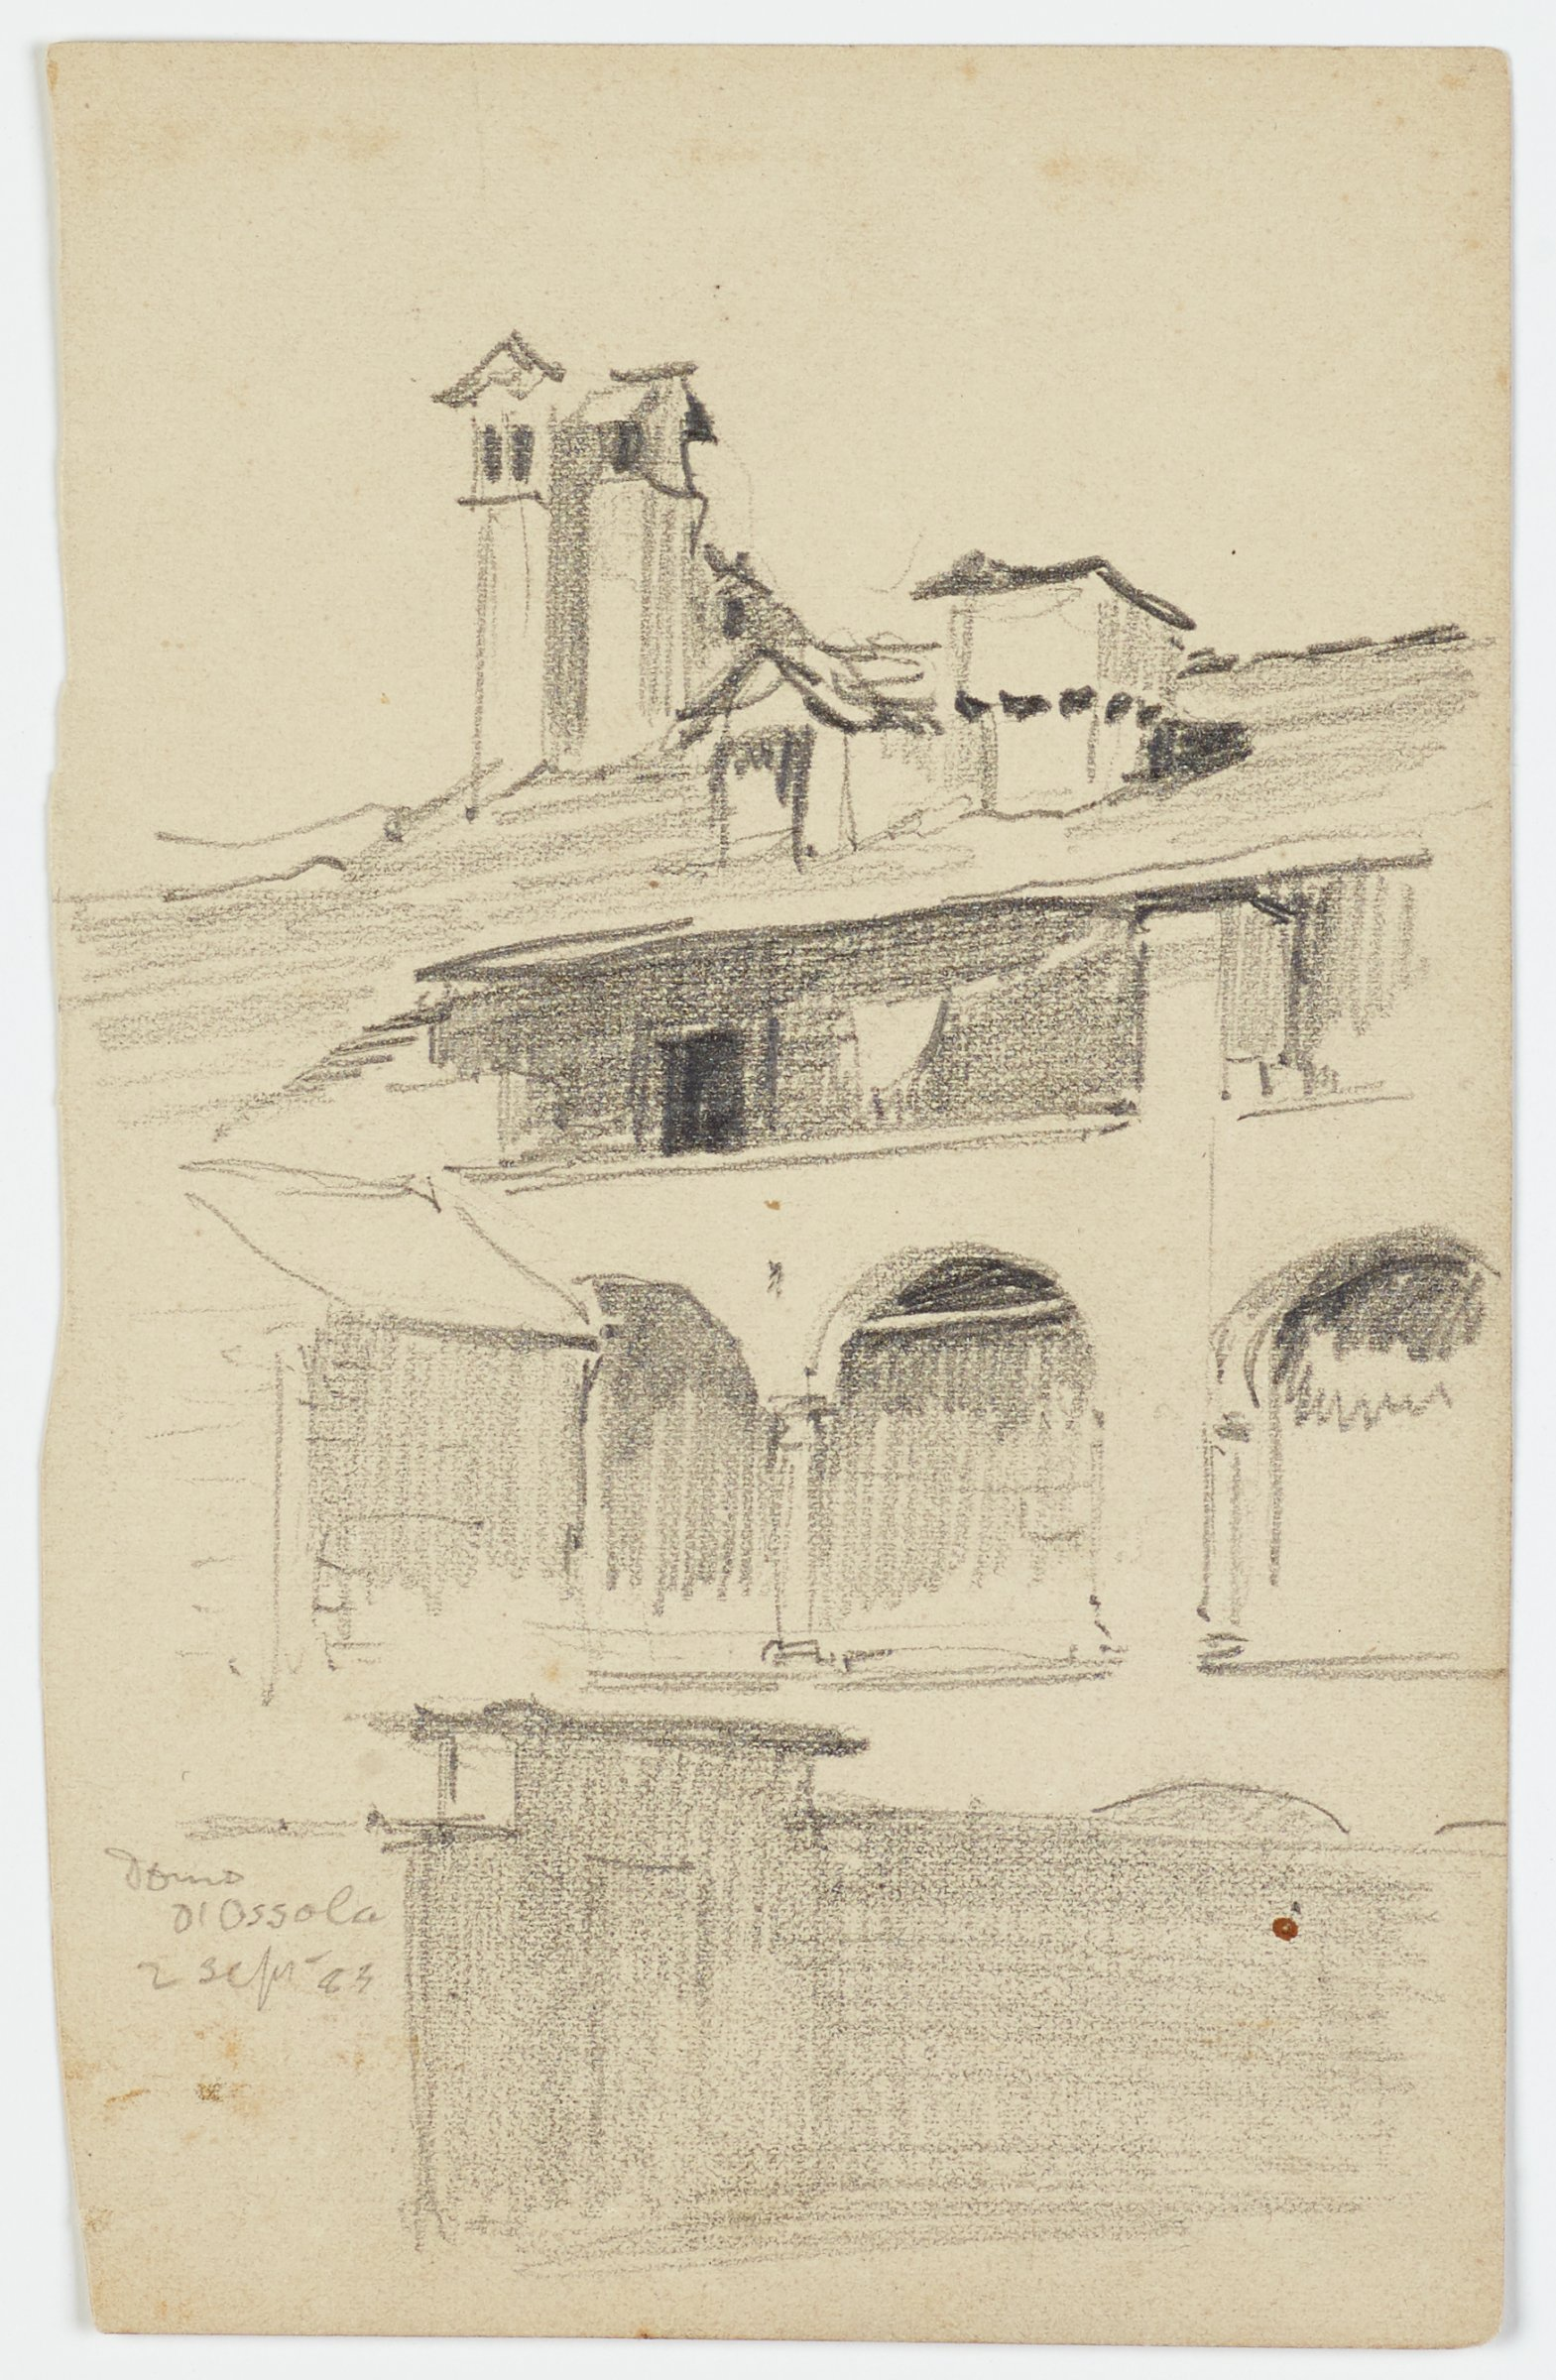 This graphite drawing shows a three-story building with three towers on the roof. The second floor of the building is characterized by romanesque arches. In front of the tall building is another building of a smaller scale that partially obscures the view of the larger building.